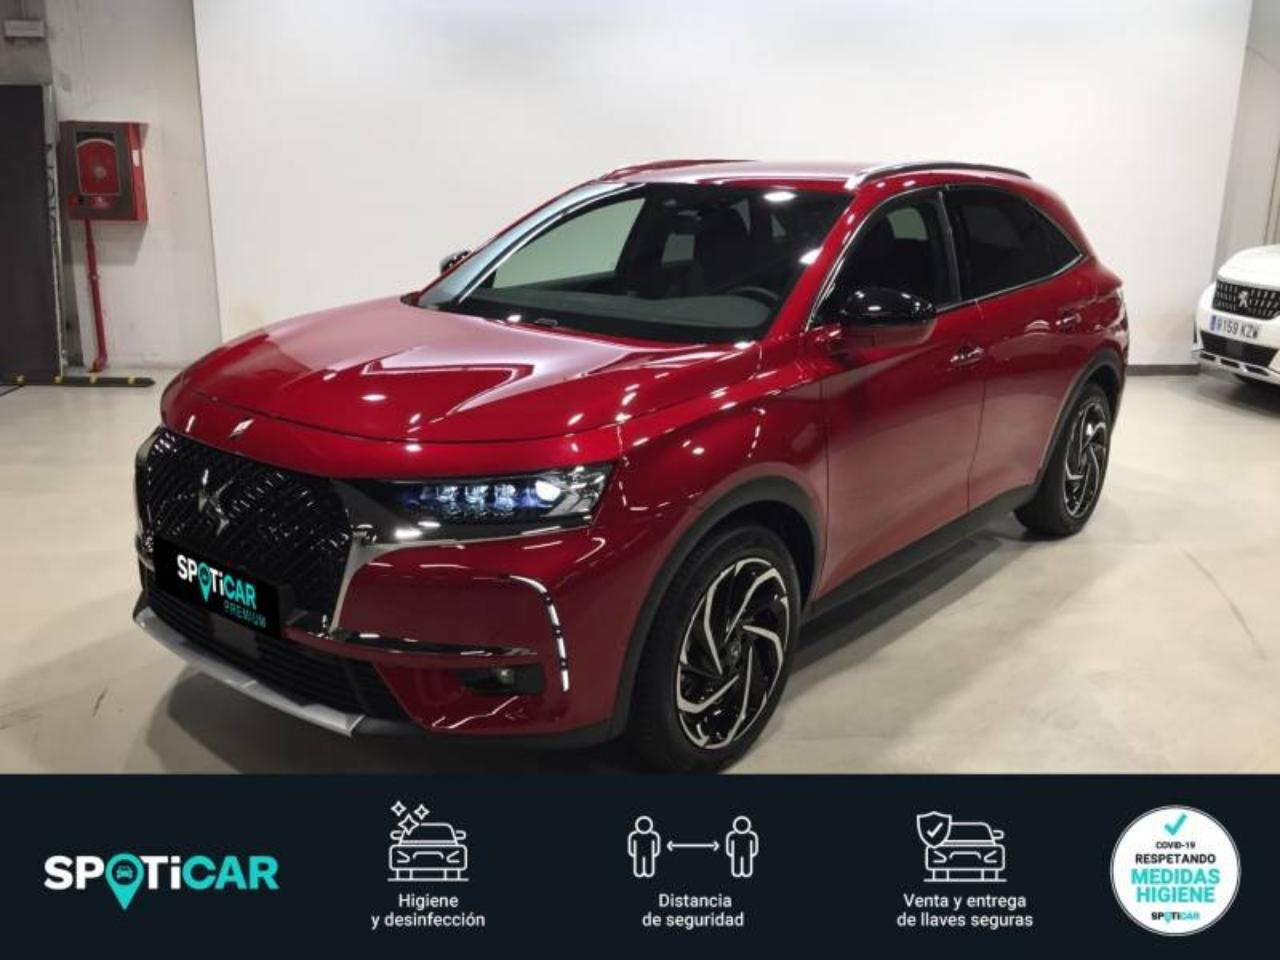 Ds DS 7 Crossback 1.6 E-Tense 300 GRAND CHIC Auto 4WD Grand Chic